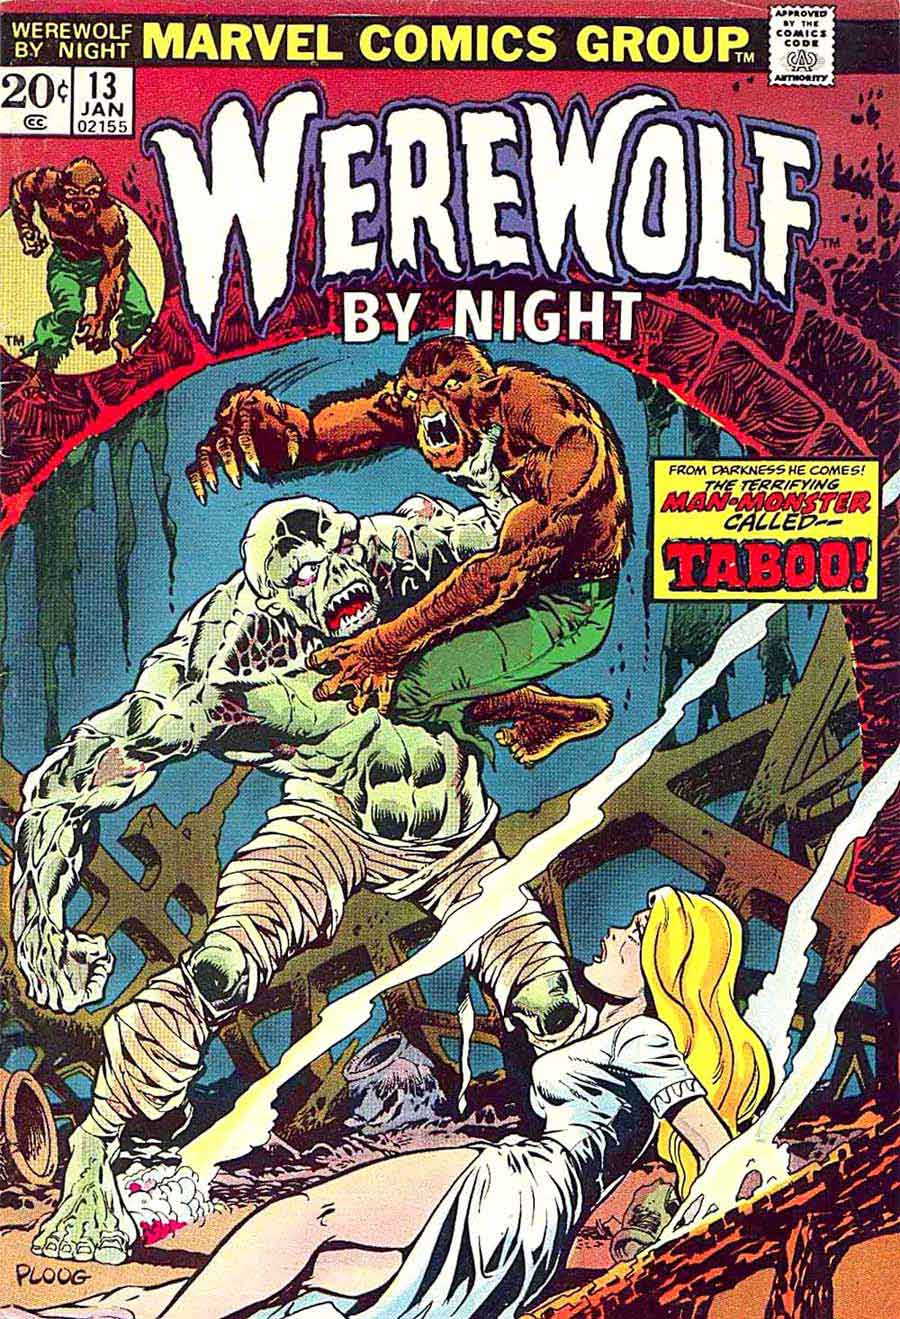 Comic Book Cover Drawing ~ Werewolf by night mike ploog art cover pencil ink